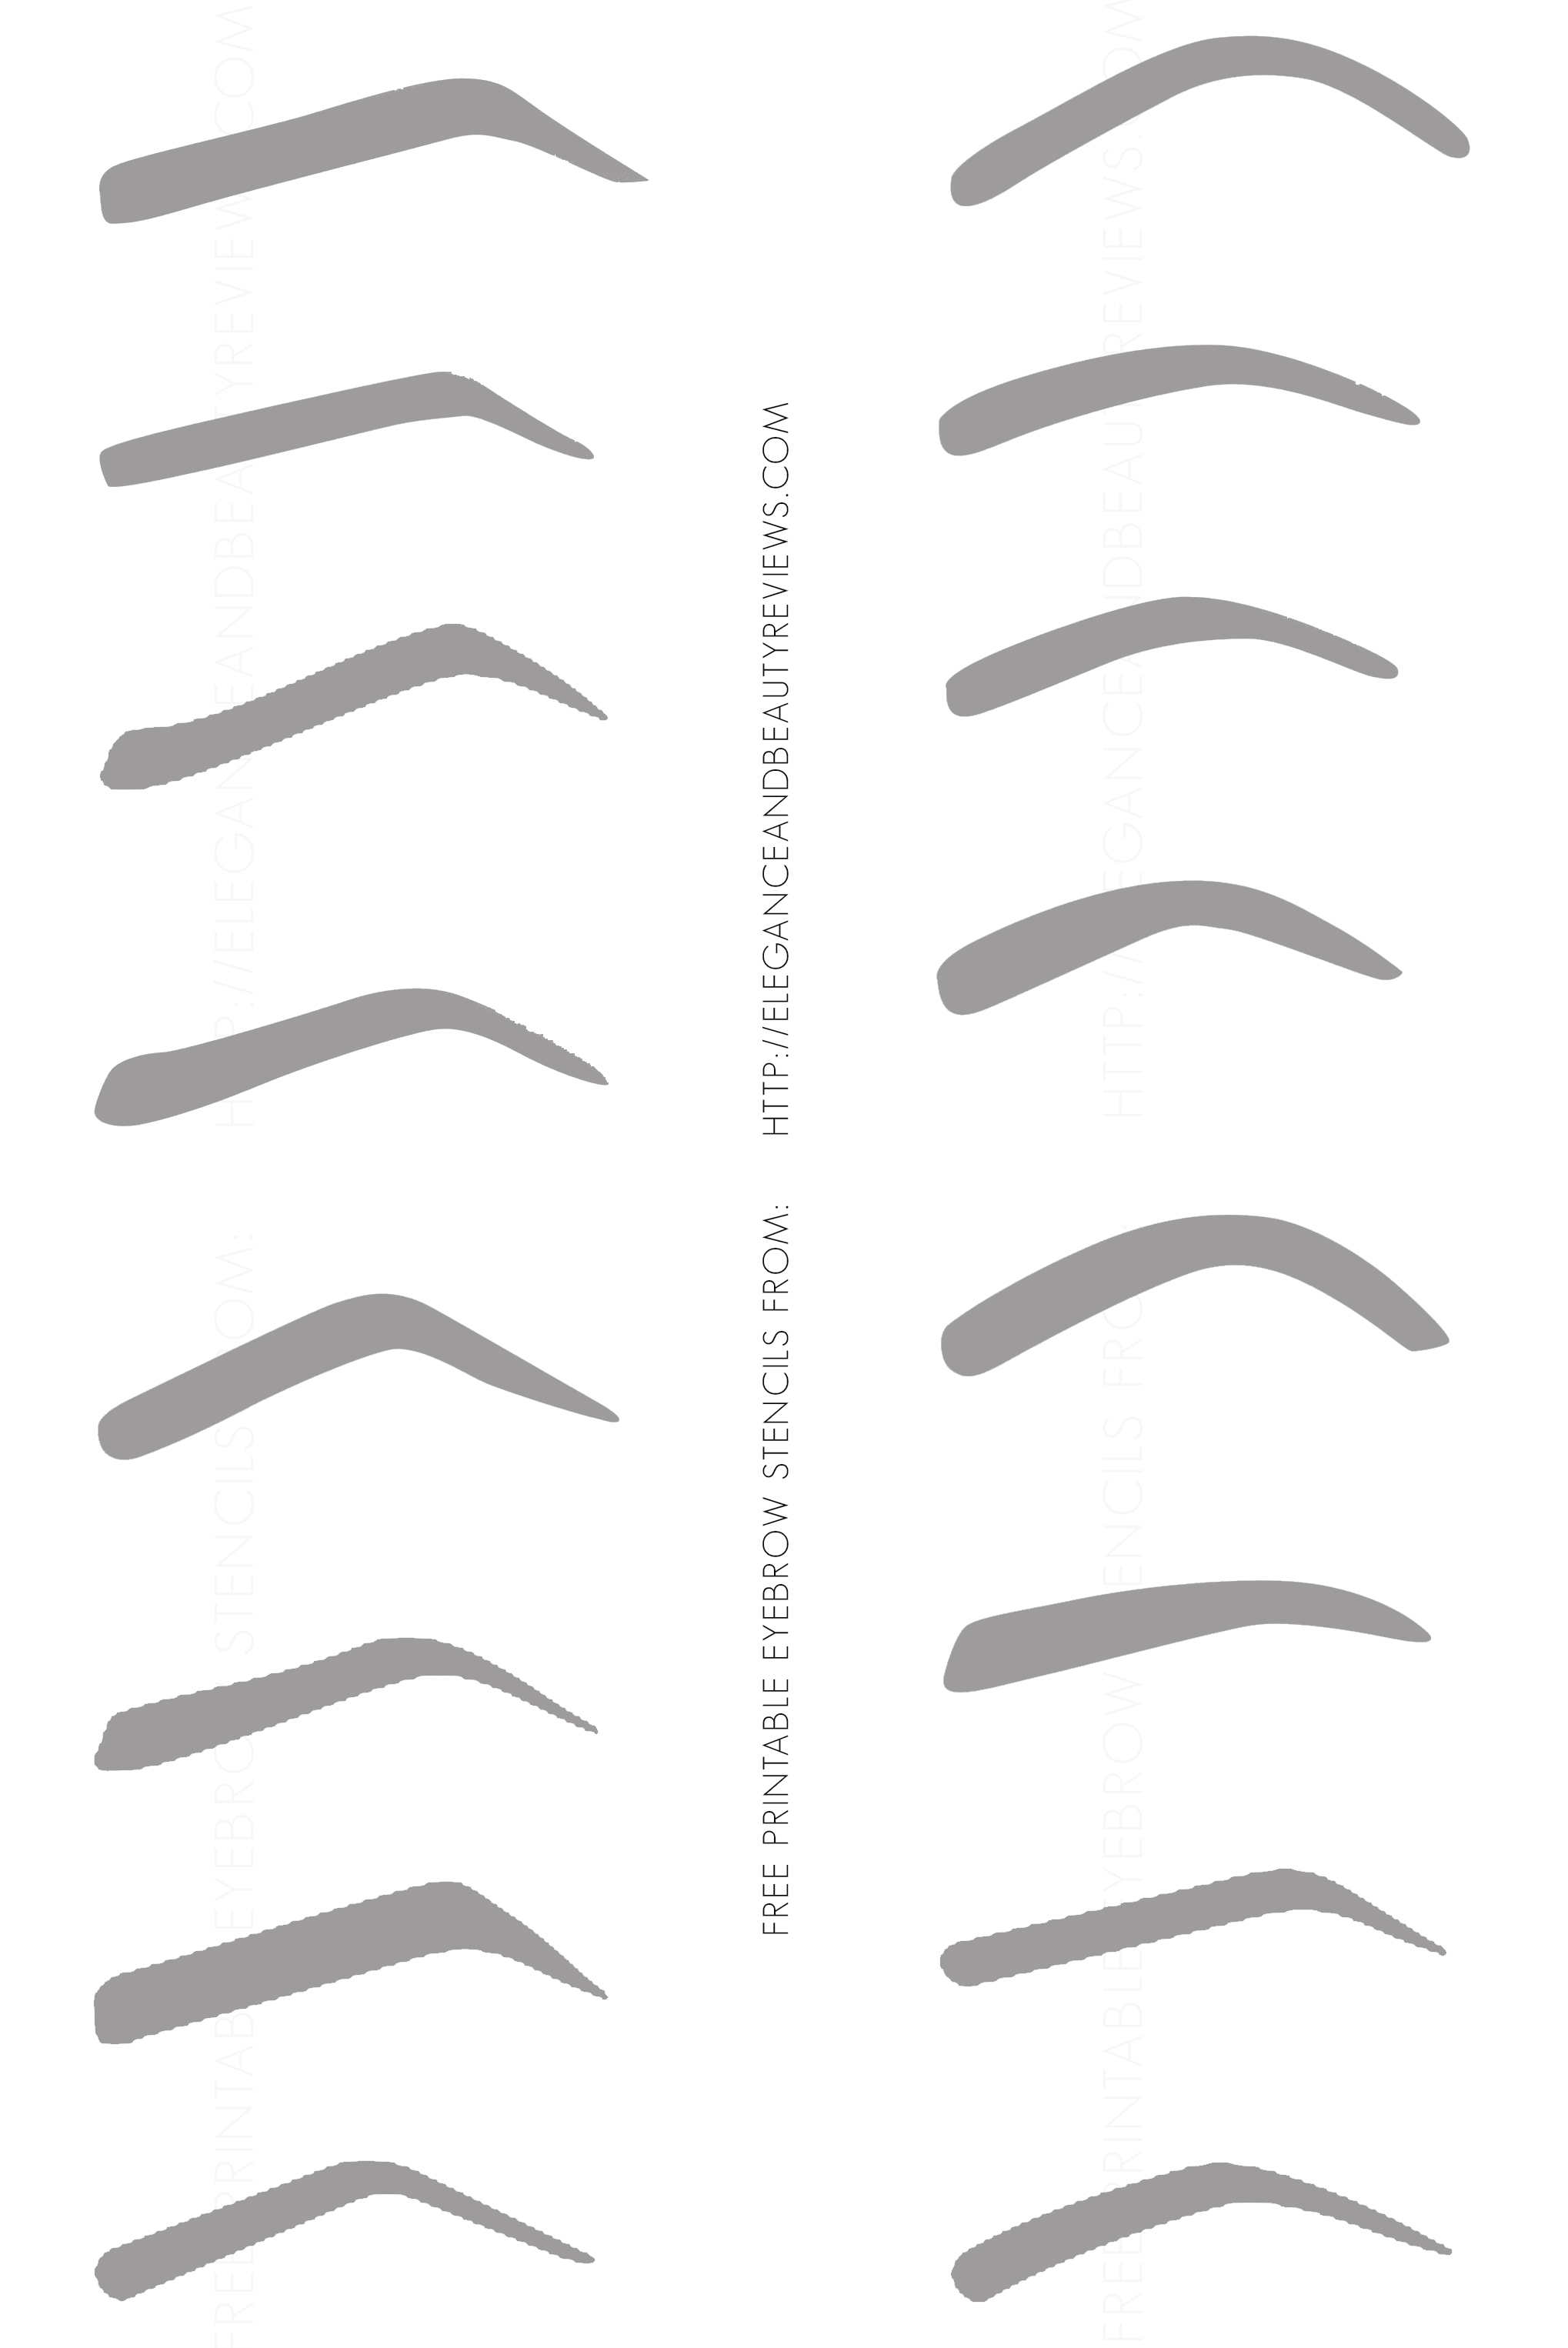 photograph about Eyeliner Stencil Printable named Totally free Printable Eyebrow Stencils